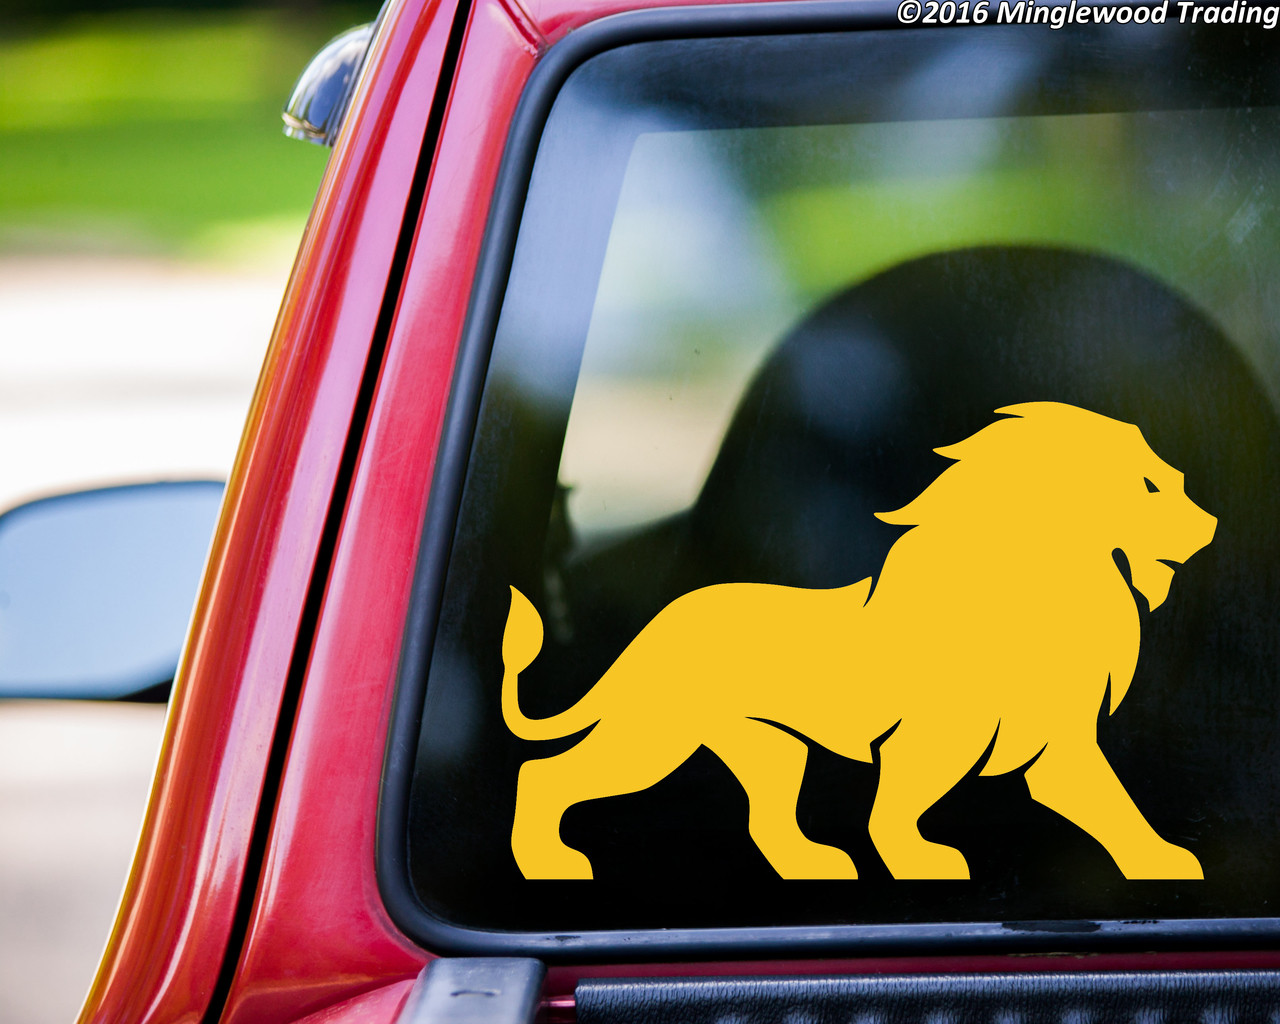 Lion Vinyl Decal V2 - Big Cat King of the Jungle Leo Mane - Die Cut Sticker